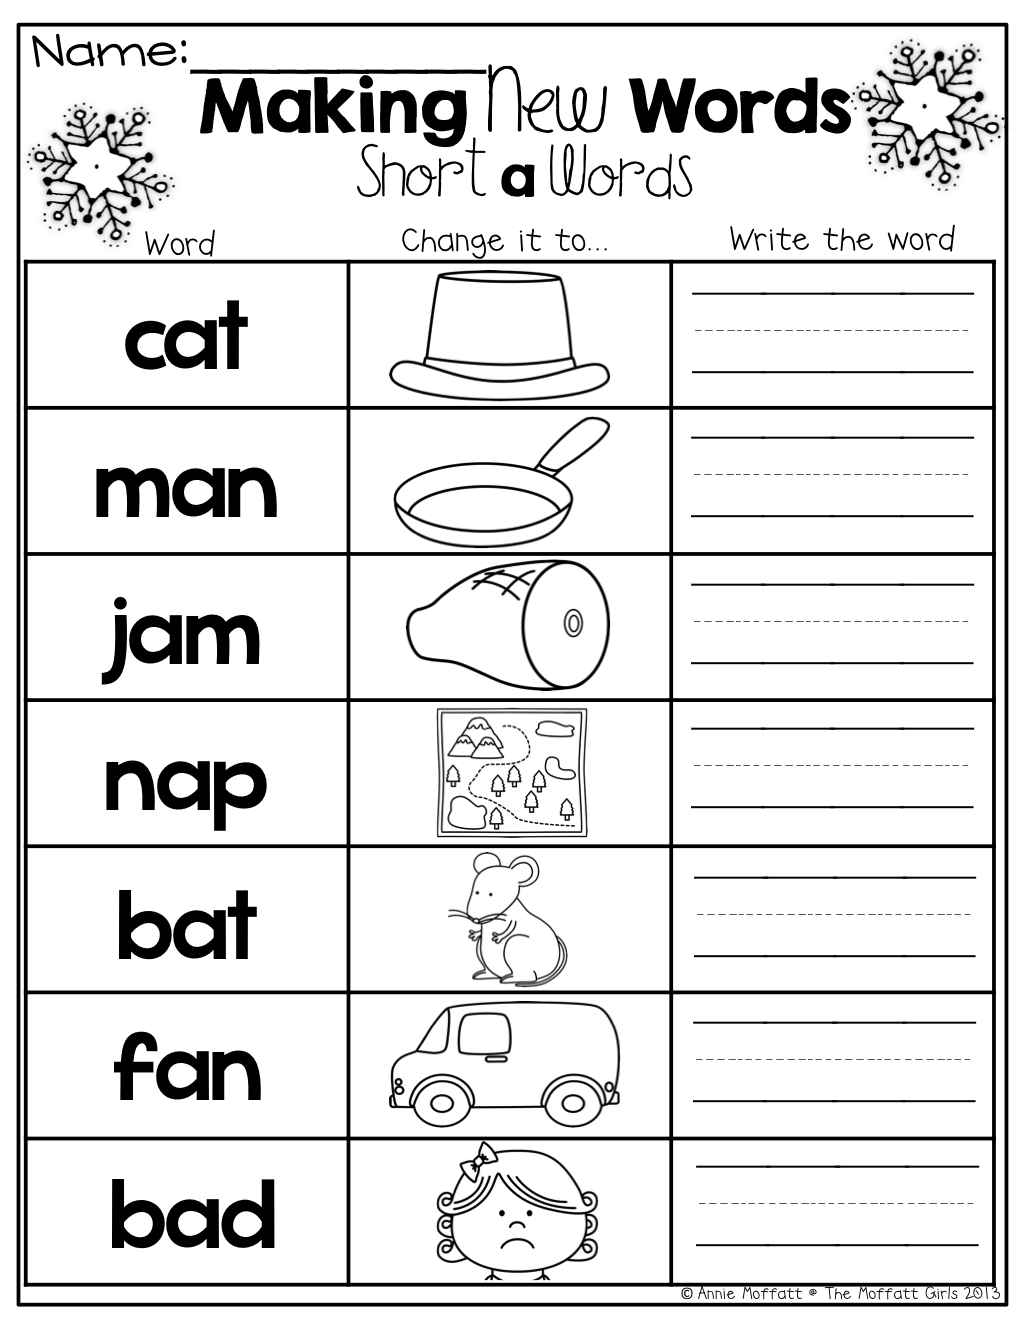 worksheet Word Segmentation Worksheets make new words by changing the beginning sound skool dayz sound